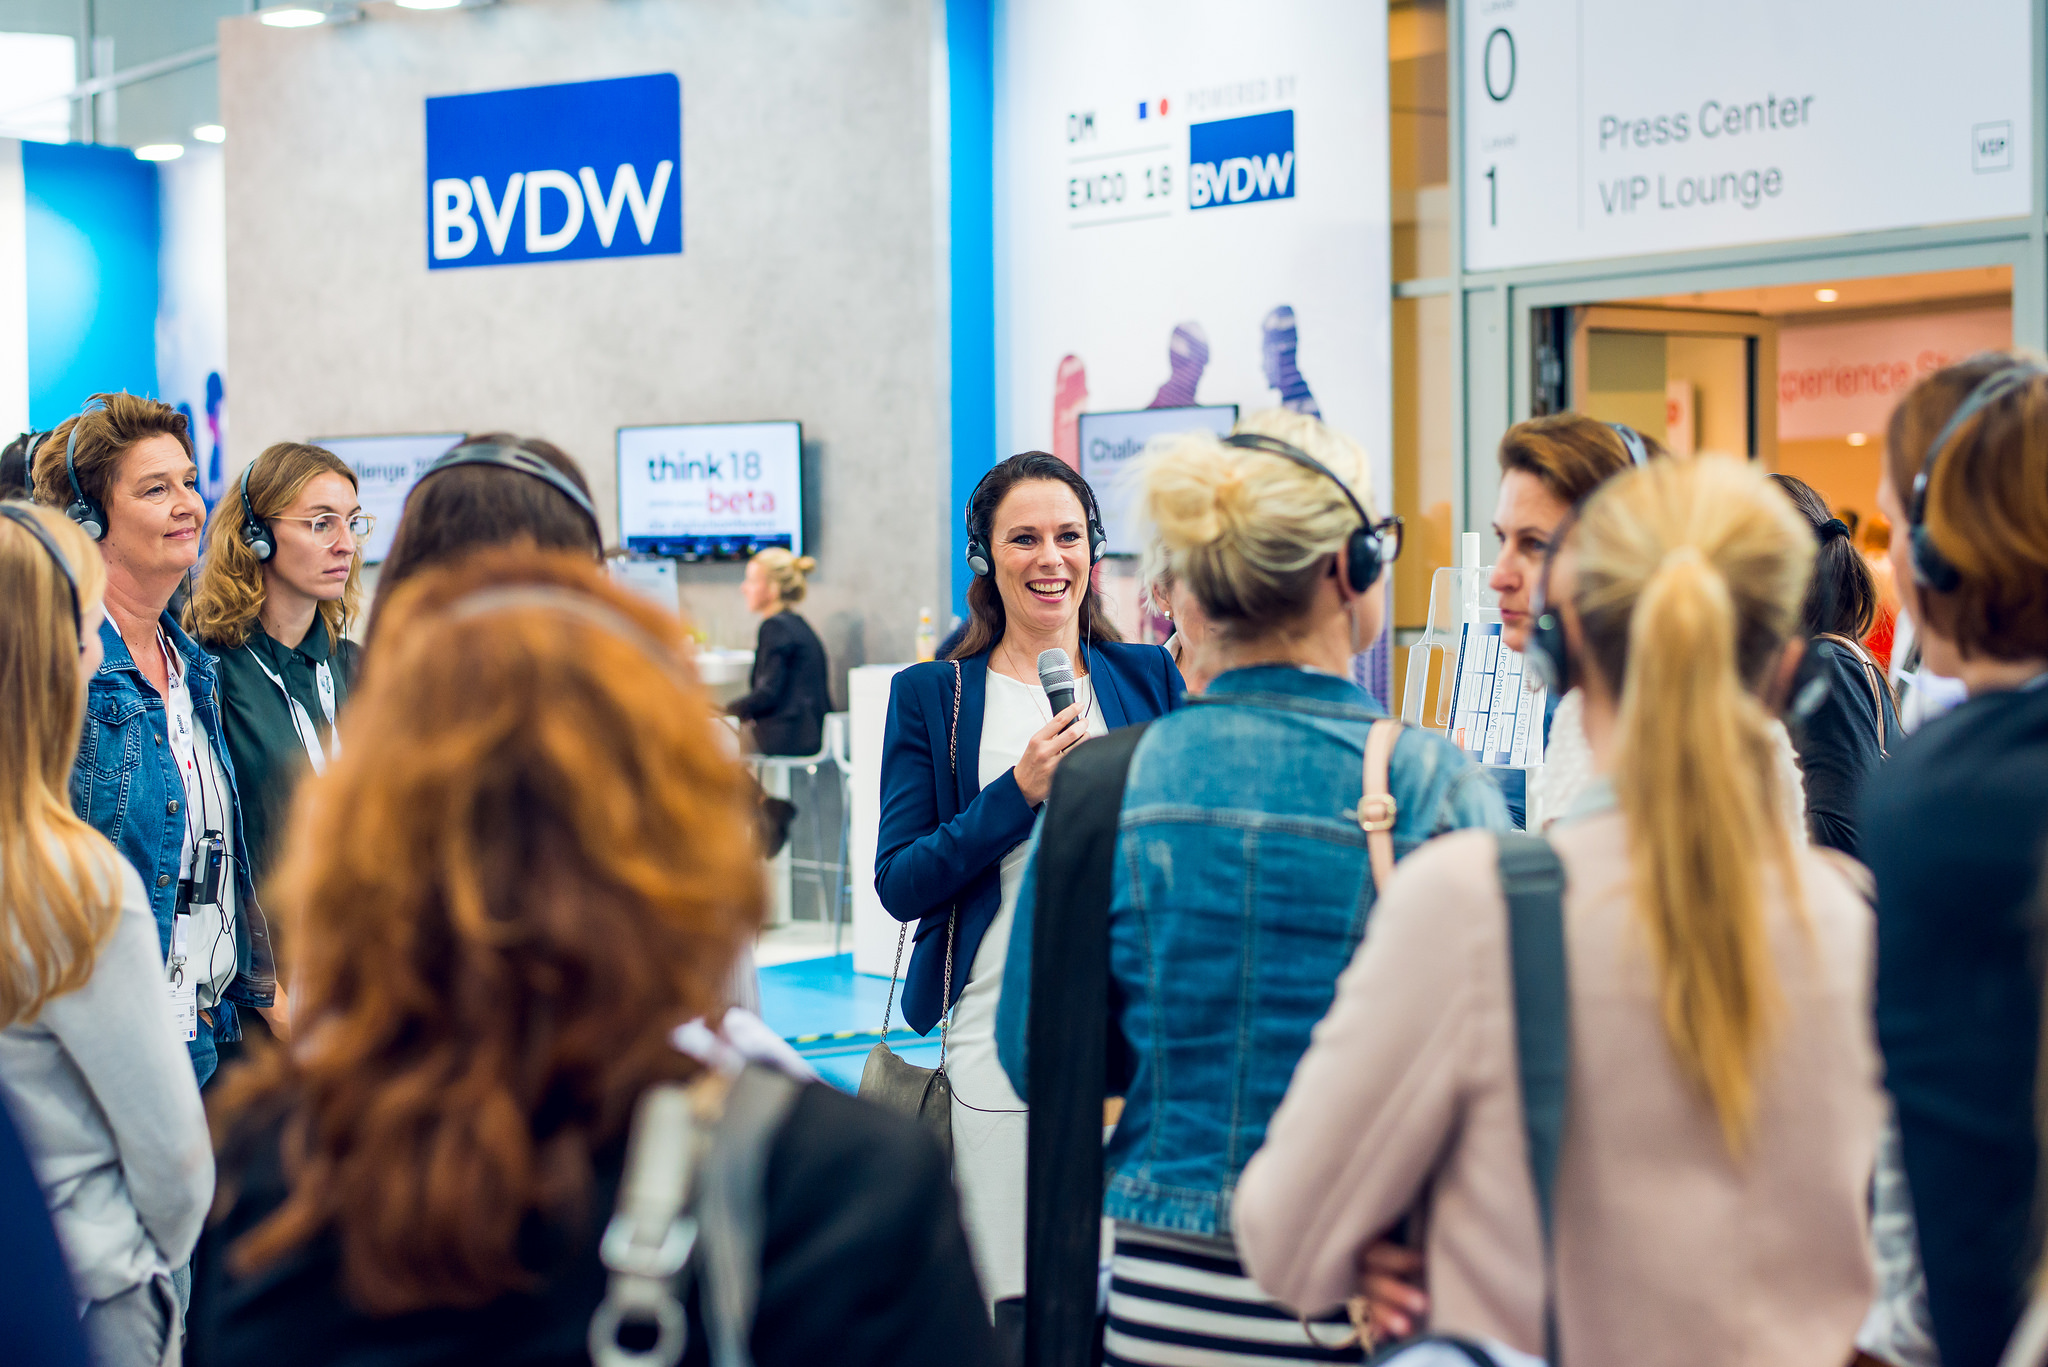 BVDW-Guided-Tours_2018_Cherine_1.jpg